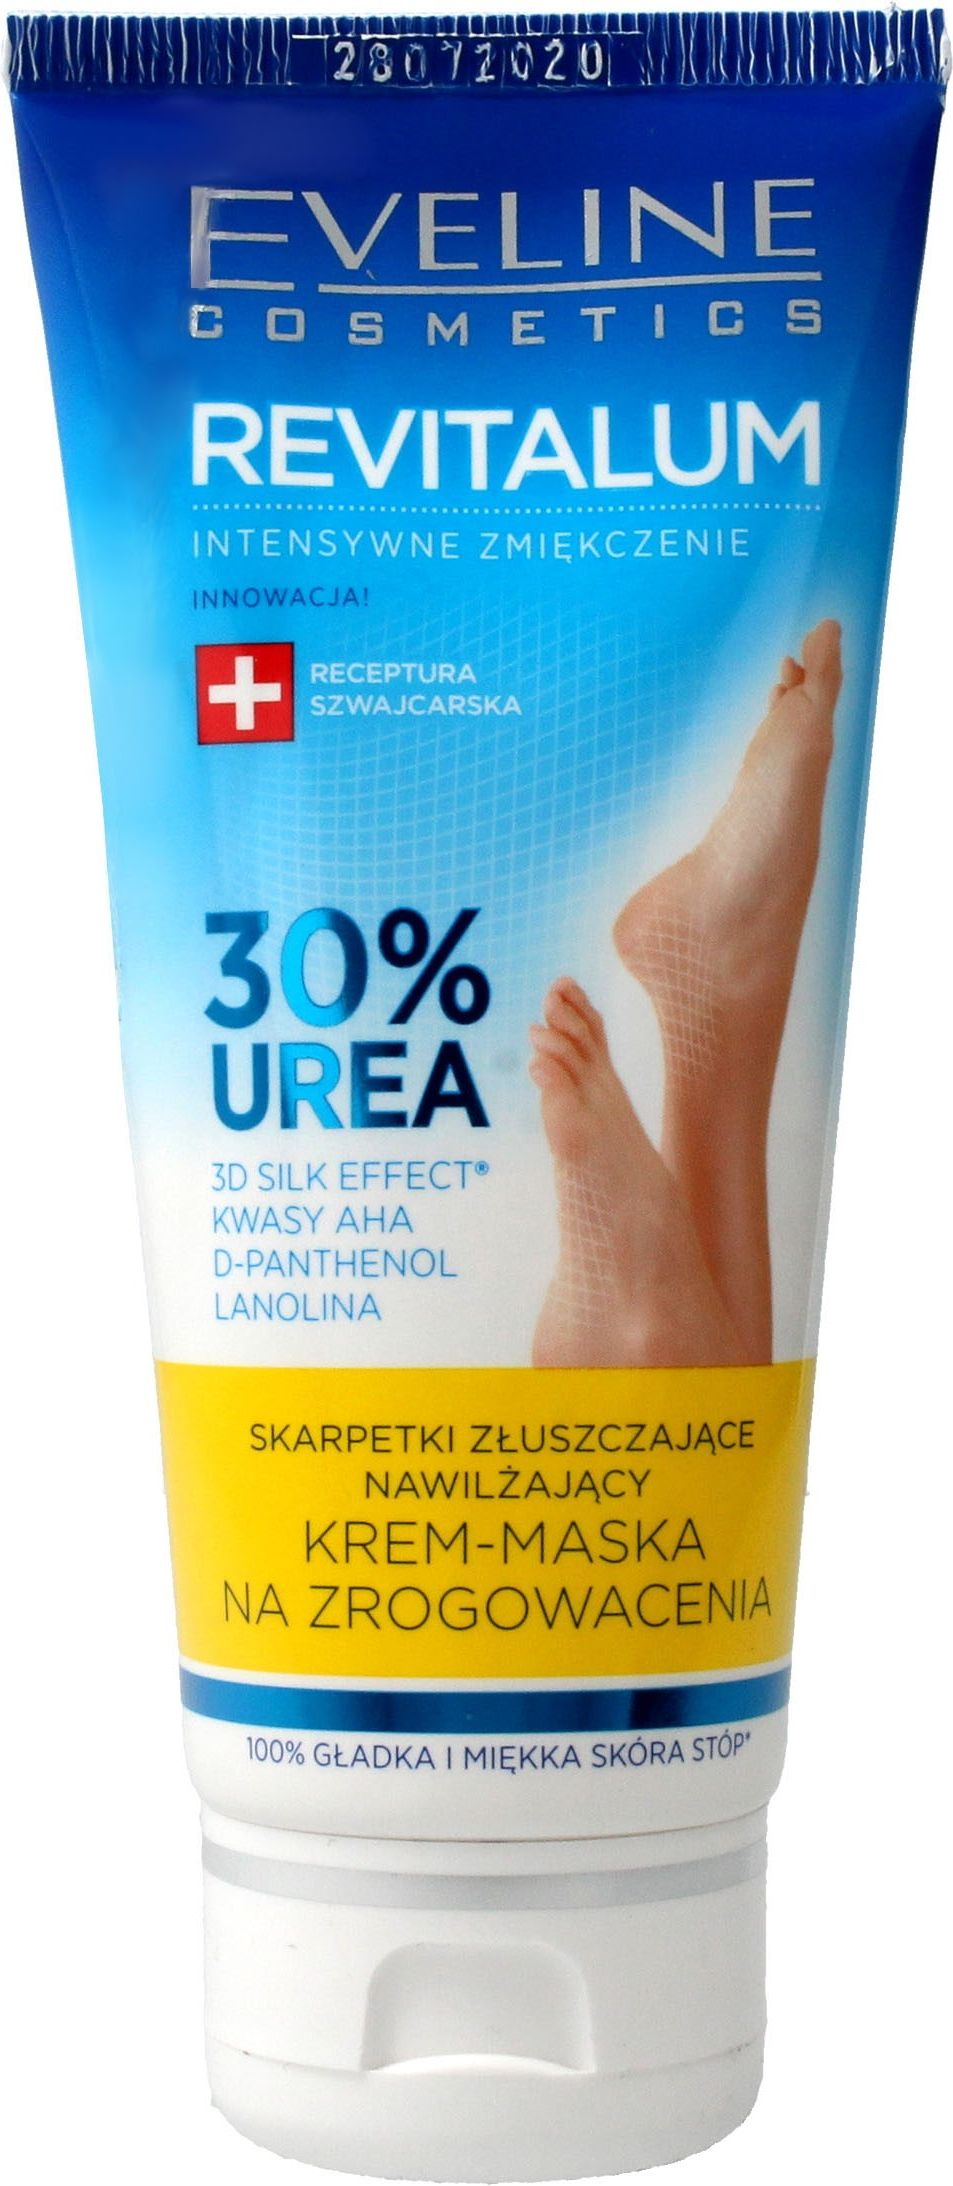 Eveline Revitalum 30% Urea Cream Cream-mask exfoliating 100ml Roku, pēdu kopšana